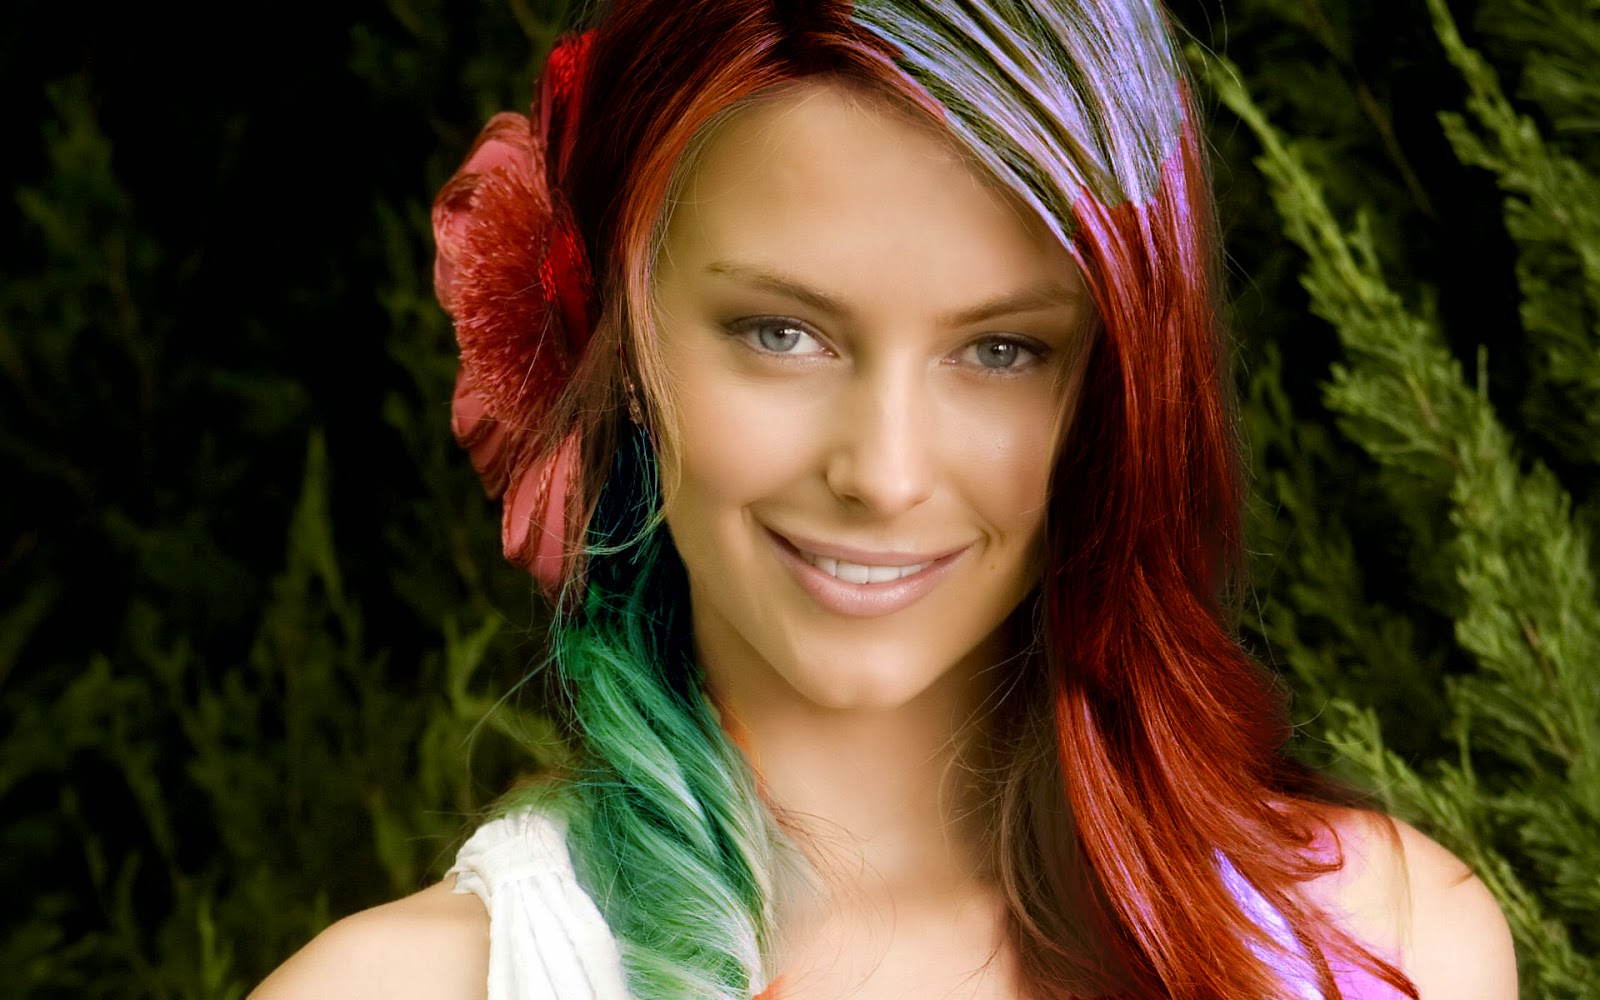 How To Change Hair Color Using Adobe Photoshop Cs6 Devil Psd